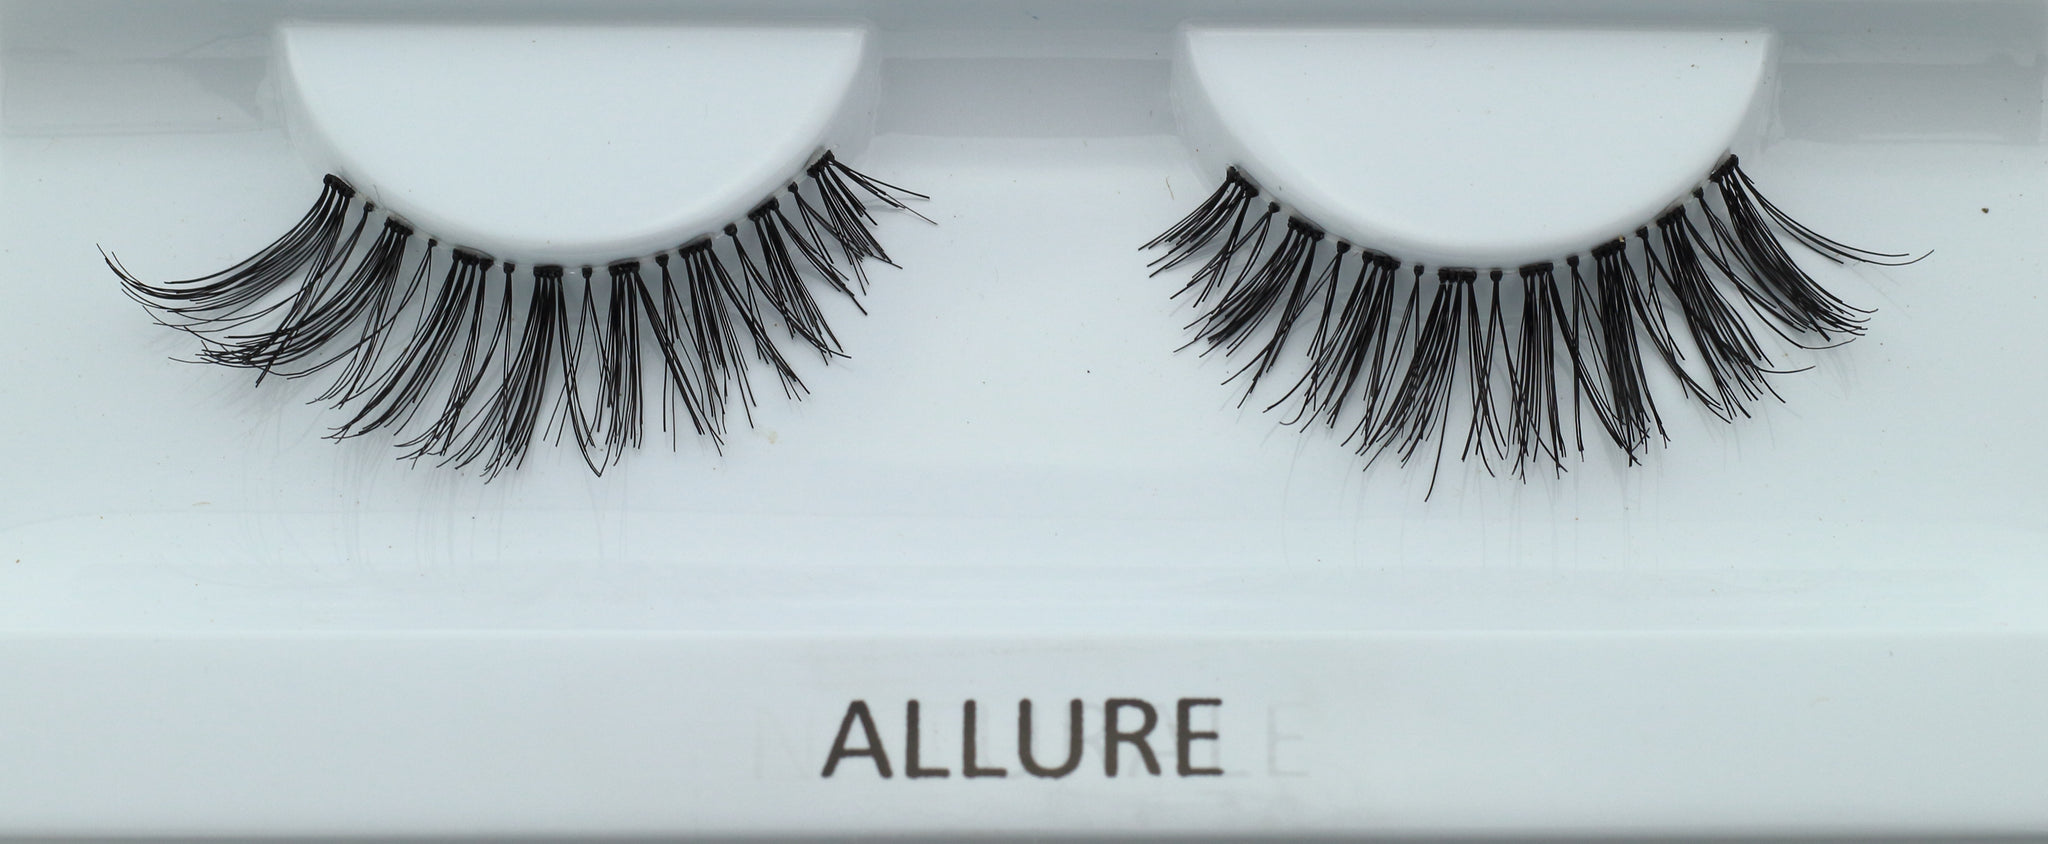 67190c706bb KOKO Lashes-Allure | Naka Cosmetics